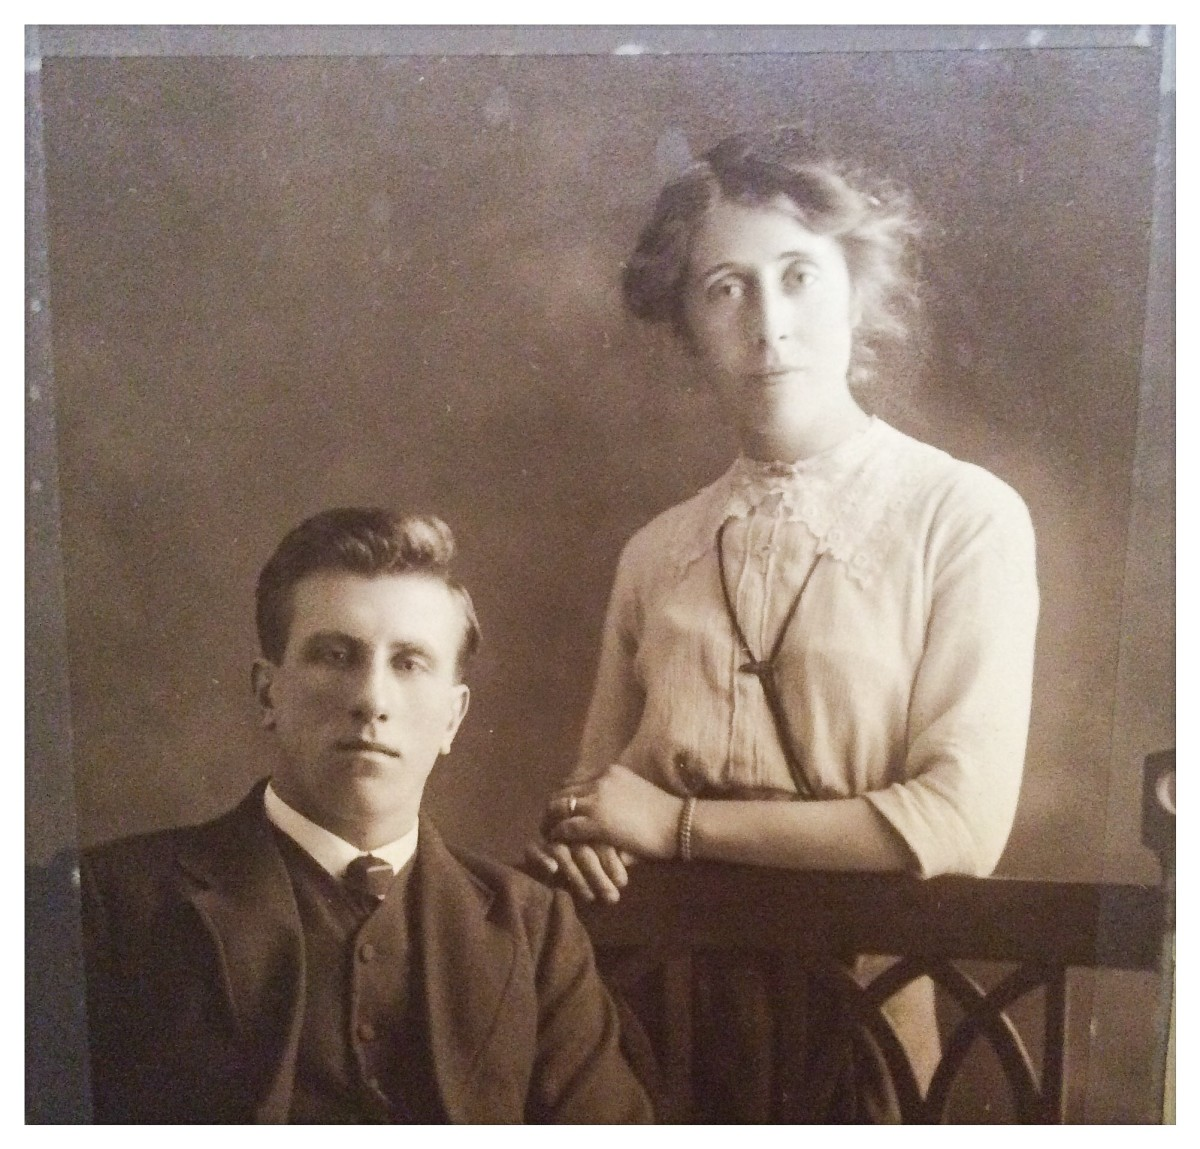 My grandparents as a young couple. Grandad is wearing his serious face for the photo. He was more often smiling when I knew him.